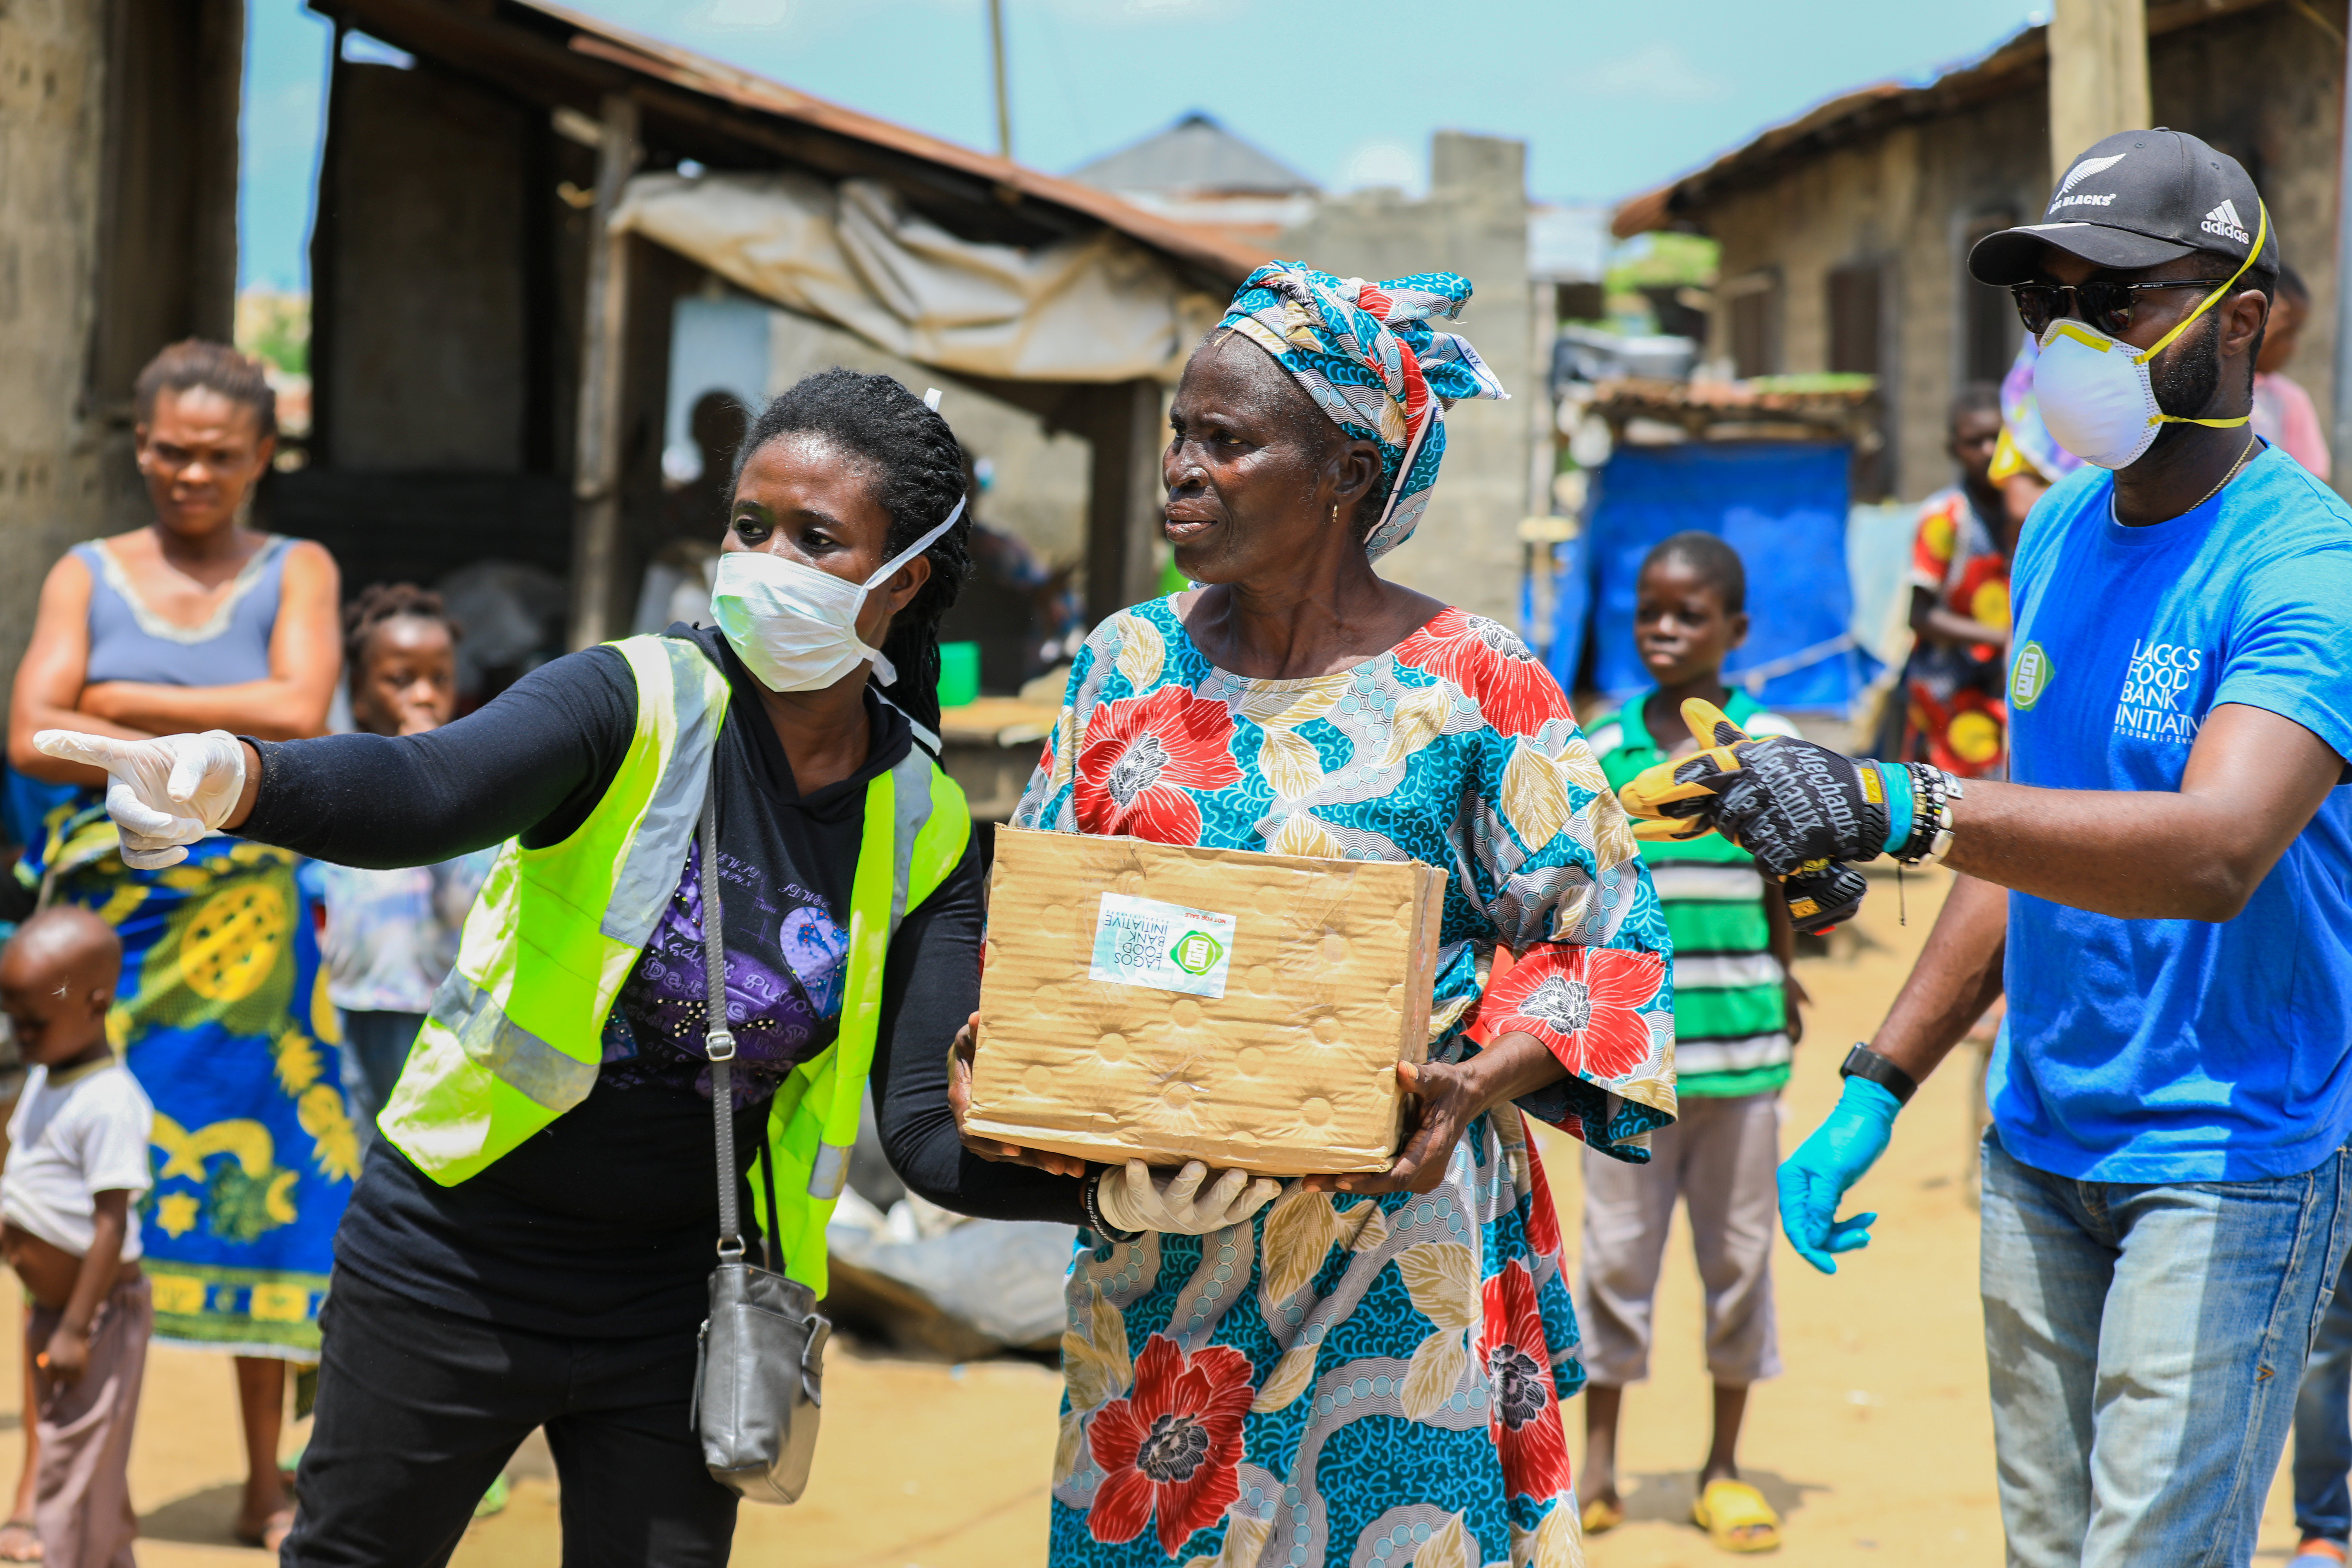 Volunteers gesture as they direct an elderly woman at an ongoing distribution of food parcels, during a lockdown by the authories in efforts to slow the spread of the coronavirus disease (COVID-19), in Lagos, Nigeria April 9, 2020. Picture taken April 9, 2020. REUTERS/Temilade Ade - RC2L5G9T8QZW